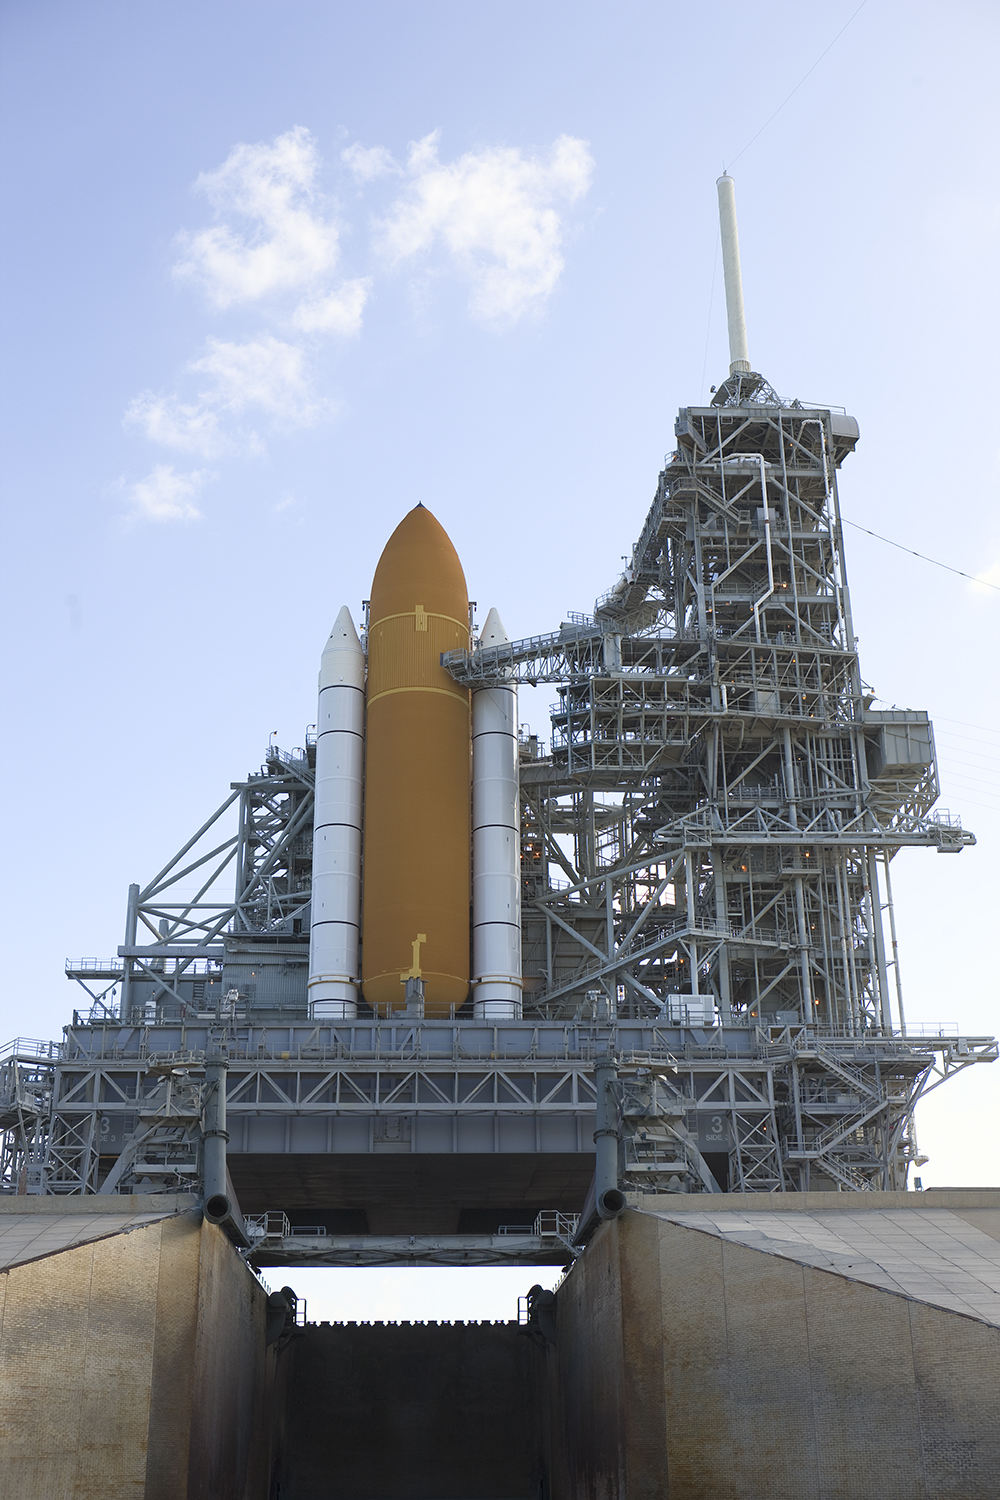 Space Shuttle Endeavour, STS-400, Pad 39B